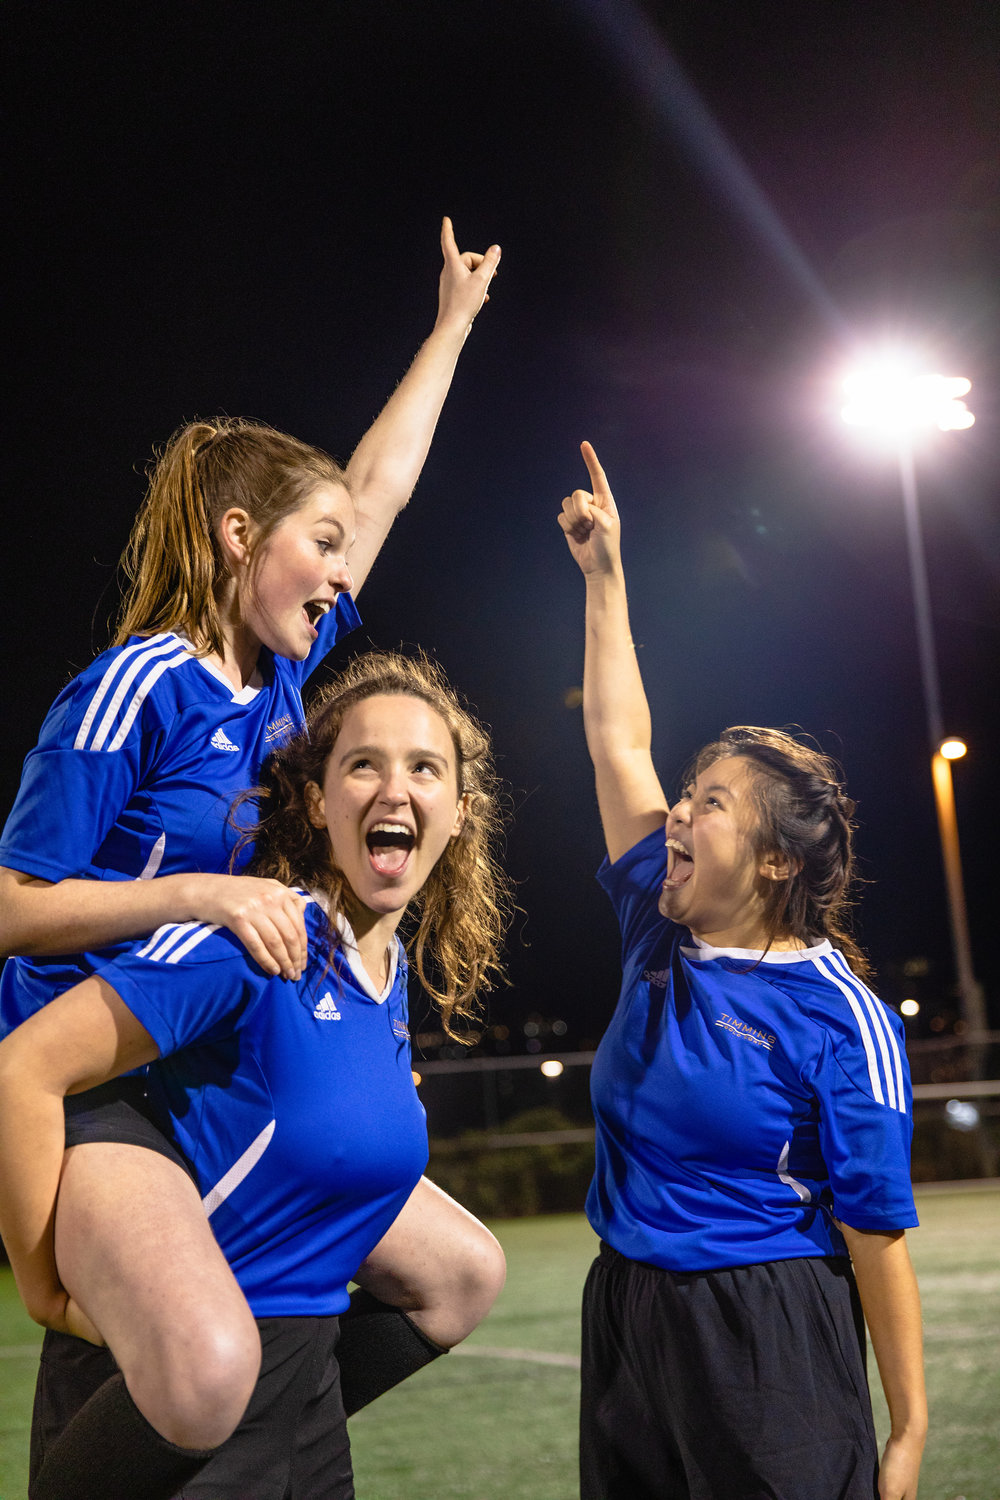 The Story: - A pack of teenage girls prepares for battle on the soccer field. In the exhilaration of adolescence, they grapple with everything from pop culture to politics, discovering their identities as individuals and as a team. Who will come out on top?How do we define ourselves?